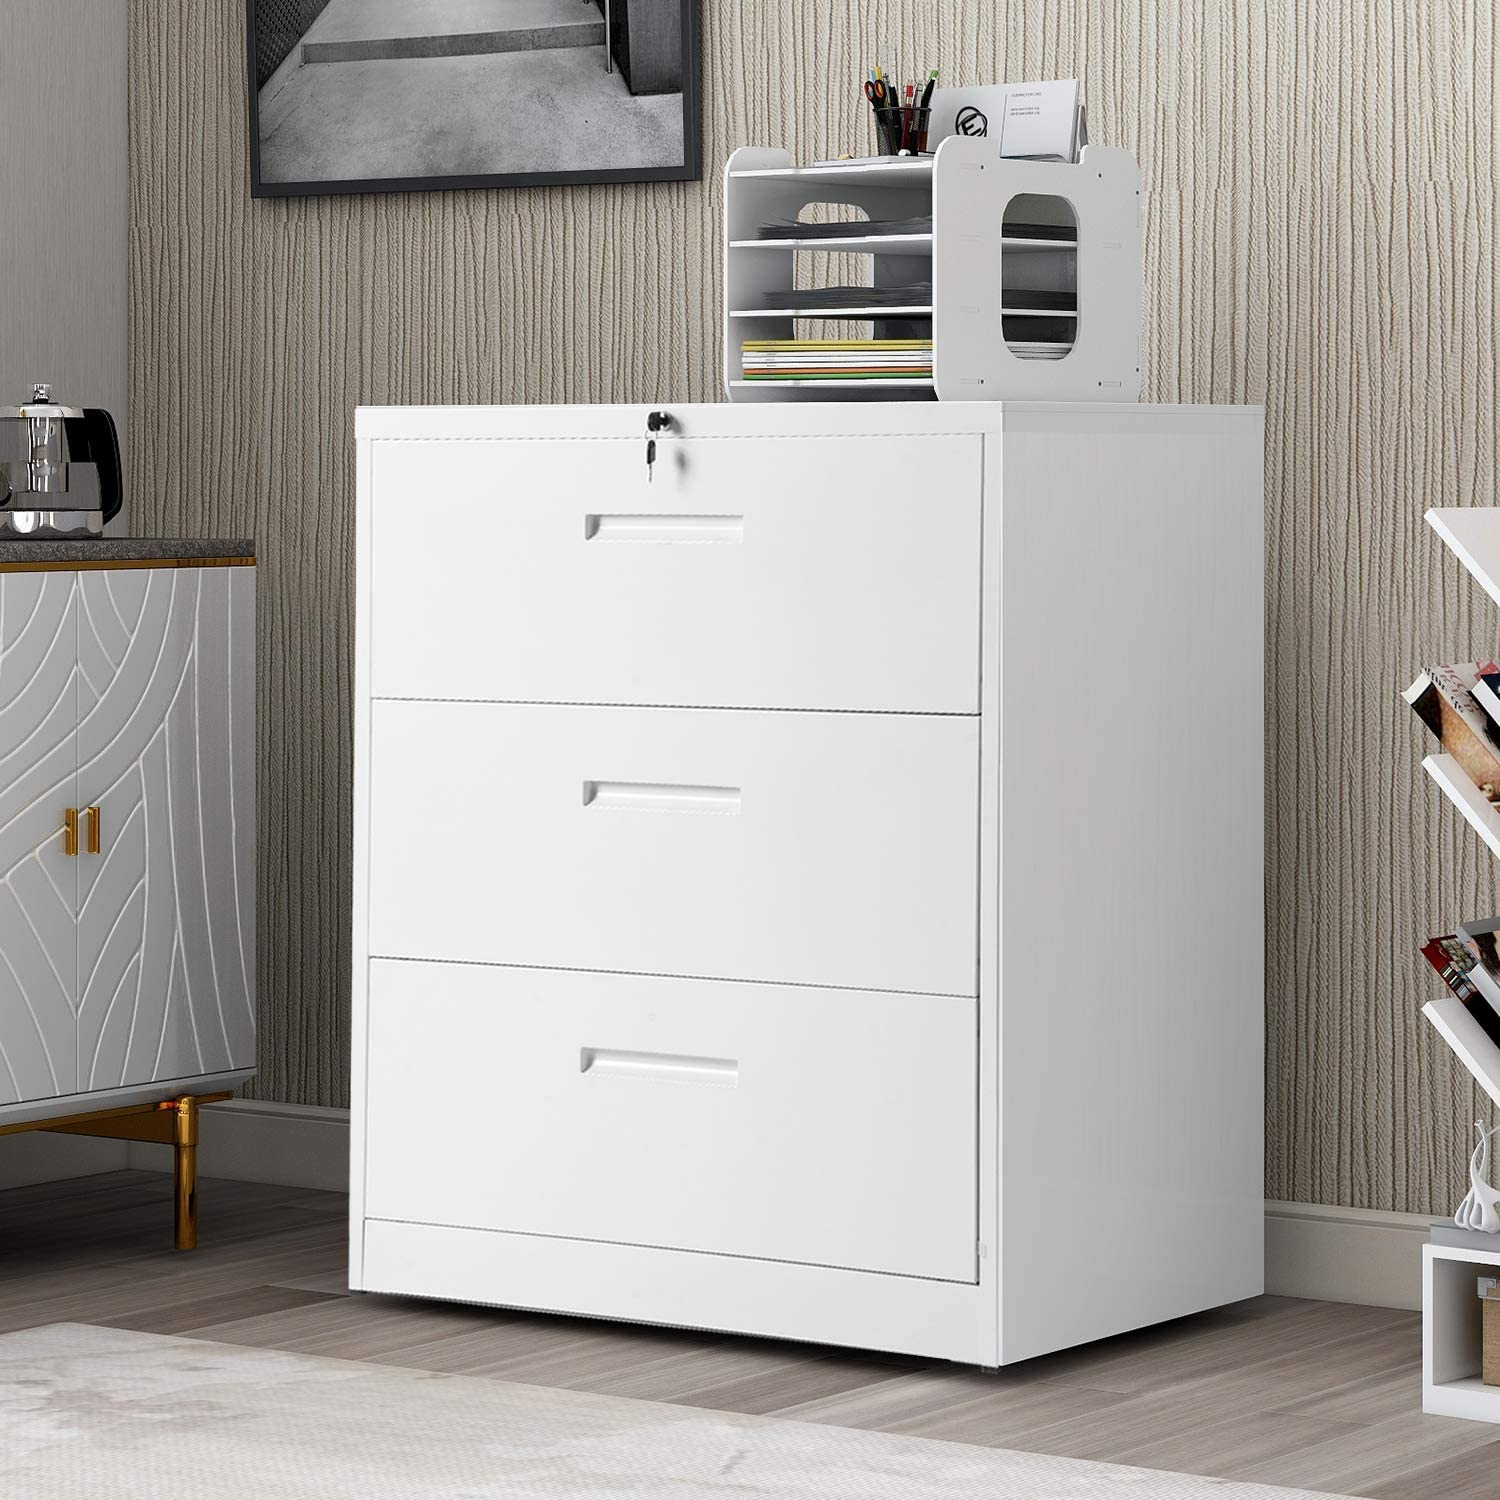 P PURLOVE 3 Drawer Lateral File Cabinet Lockable Heavy Duty Metal File Cabinets Lateral (White)…